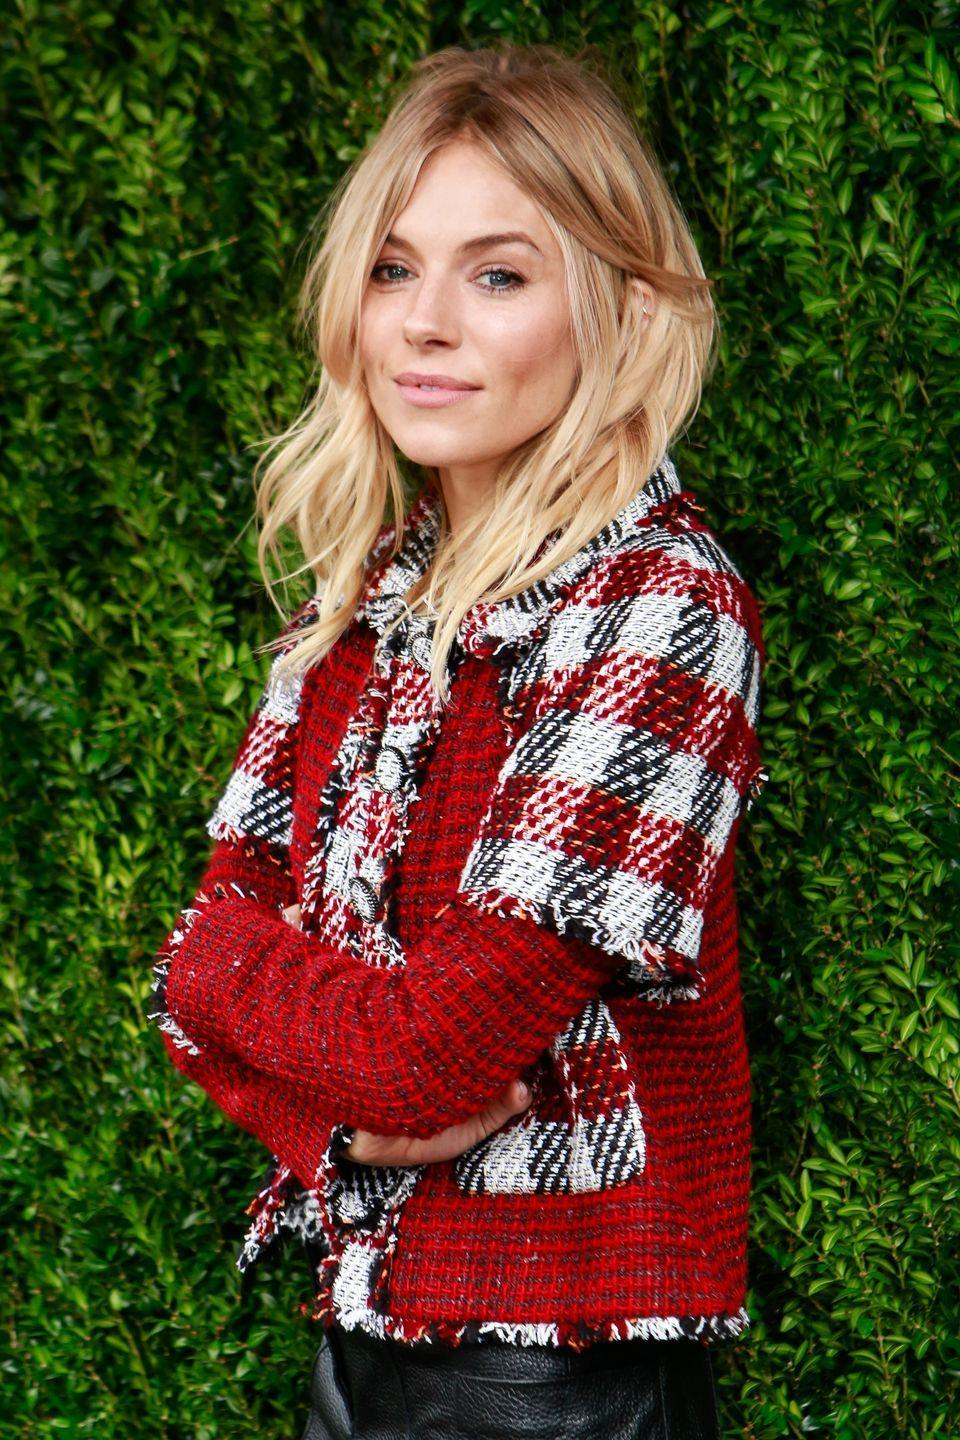 """<p>Sienna Miller portrayed mobster Whitey Bulger's girlfriend, Catherine Greig, in <em>Black Mass</em>. Unfortunately, fans of the British actress were unable to see her performance, as the filmmaker decided to <a href=""""https://www.vanityfair.com/hollywood/2015/09/sienna-miller-black-mass-cut-johnny-depp"""" rel=""""nofollow noopener"""" target=""""_blank"""" data-ylk=""""slk:cut her part due to &quot;narrative choices.&quot;"""" class=""""link rapid-noclick-resp"""">cut her part due to """"narrative choices.""""</a></p>"""